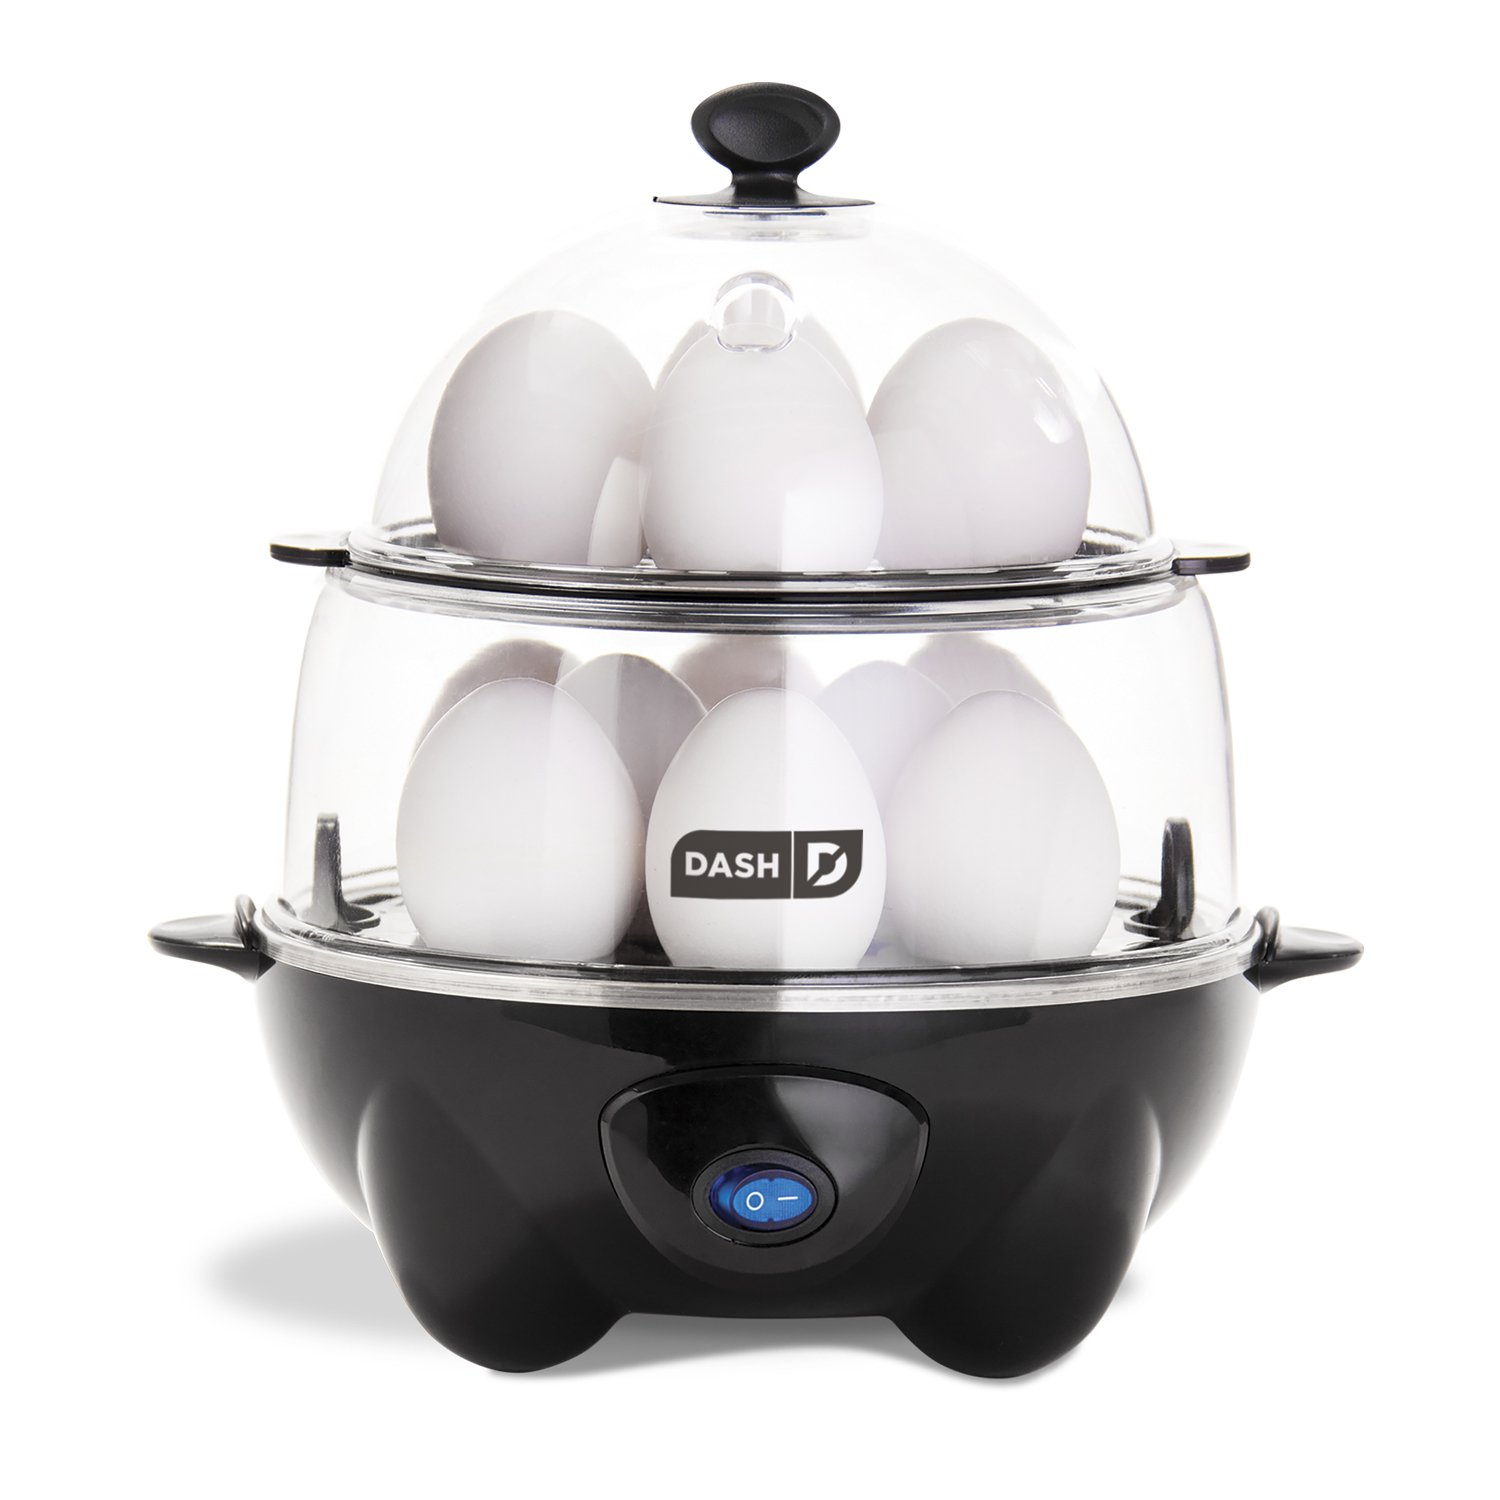 kitchen accessories - Dash DEC012BK Deluxe Rapid Egg Cooker Electric